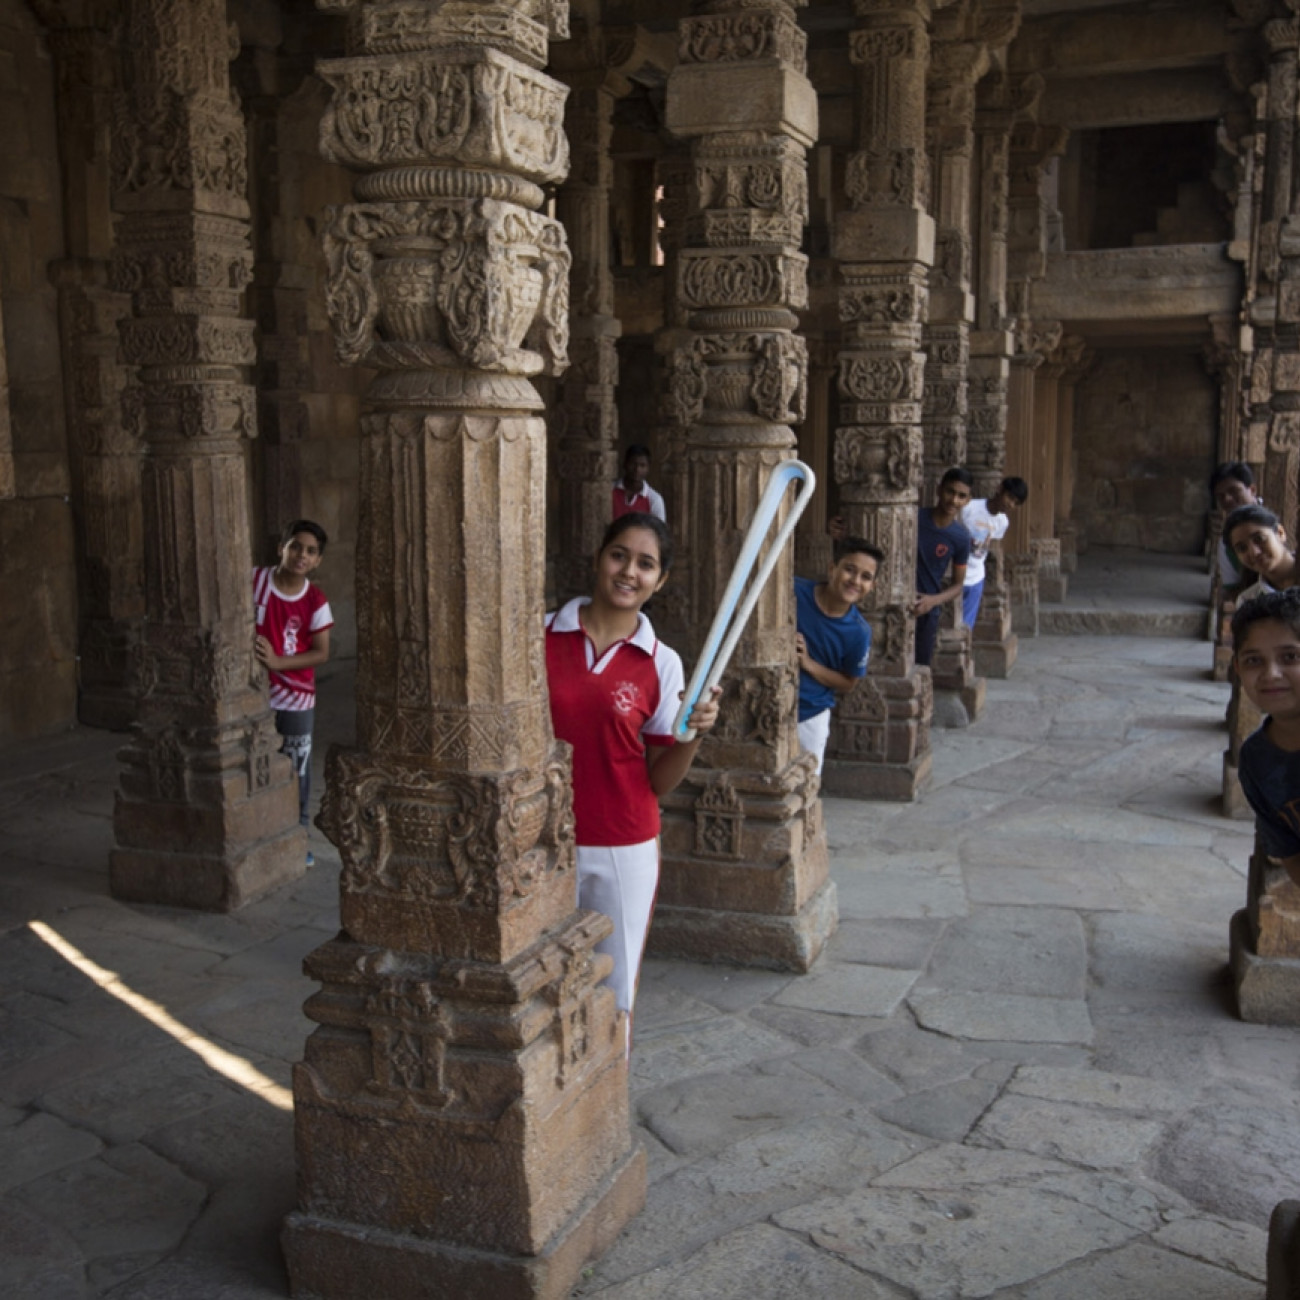 Pupils from Lal Bahadur Shastri School with the Baton at the Qutub complex World Heritage site